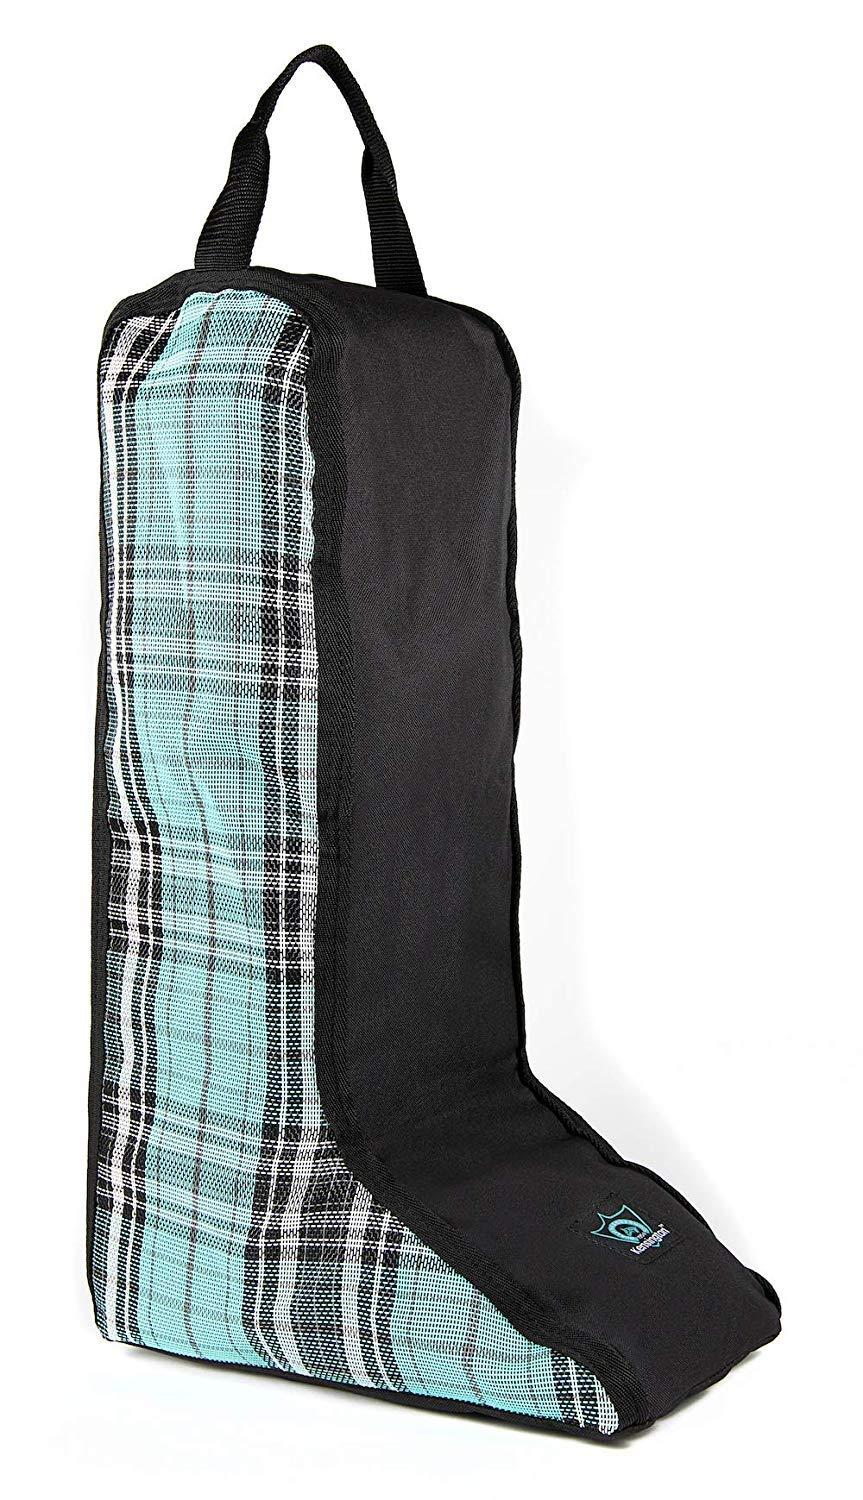 Kensington All Around Boot Carry Bag - Nylon Lining with Textilene Sides for Breathability - 22'' Tall by Kensington Protective Products